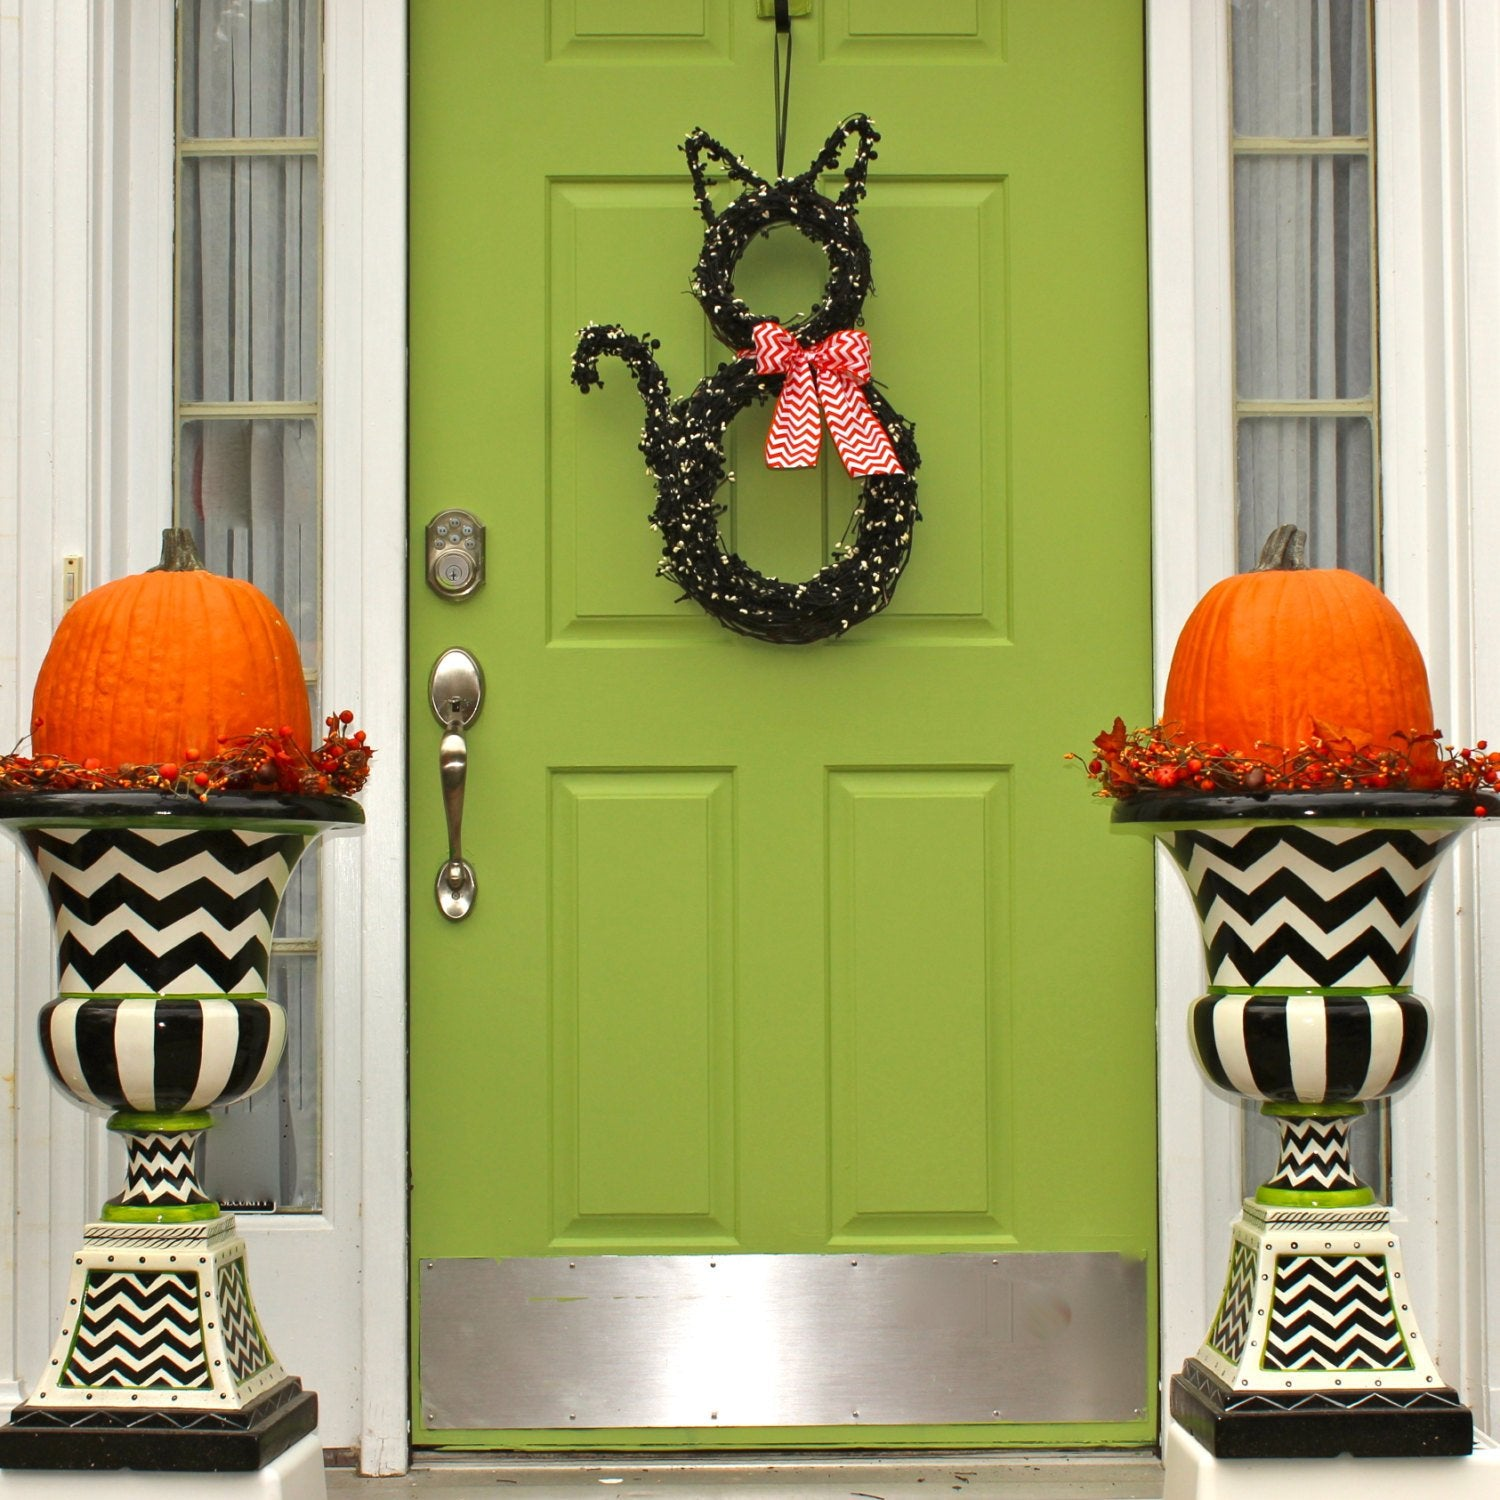 Fall Wreath - Cat Wreath - Original Wreath - Halloween Wreath - Fall Door Decor